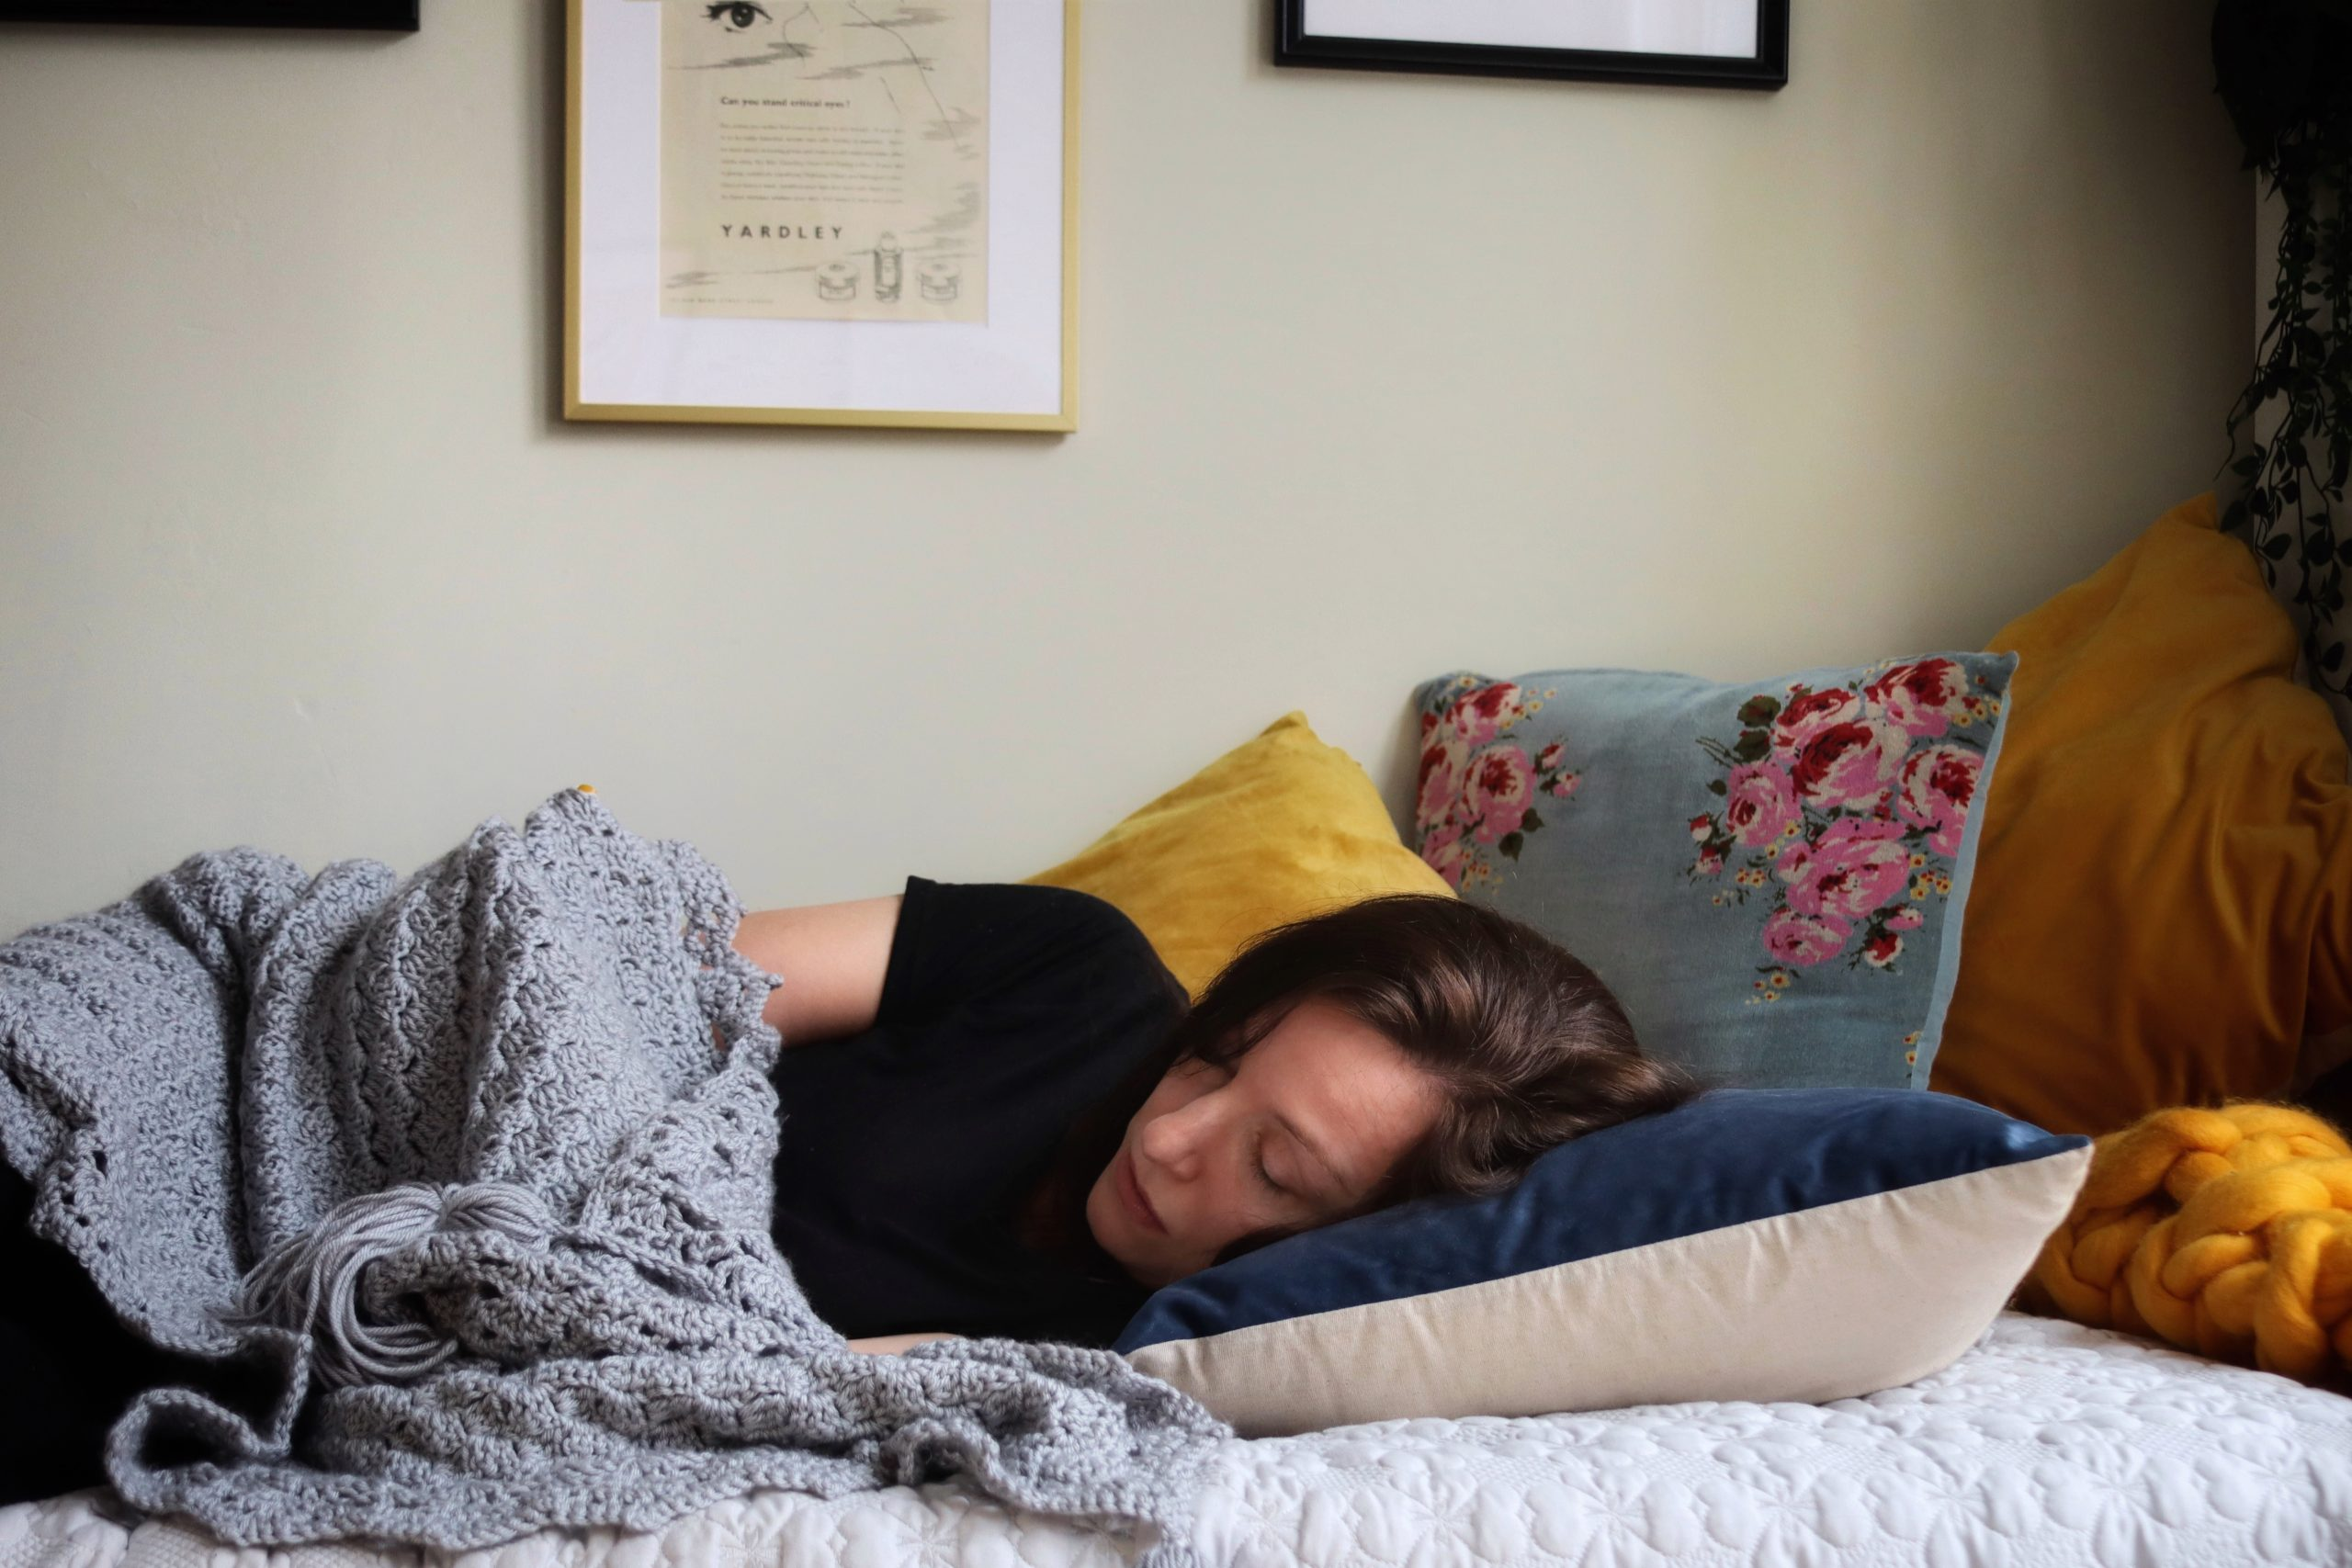 Amy lies on her bed covered in a blanket. She is surrounded by cushions. She is sick with MECFS.